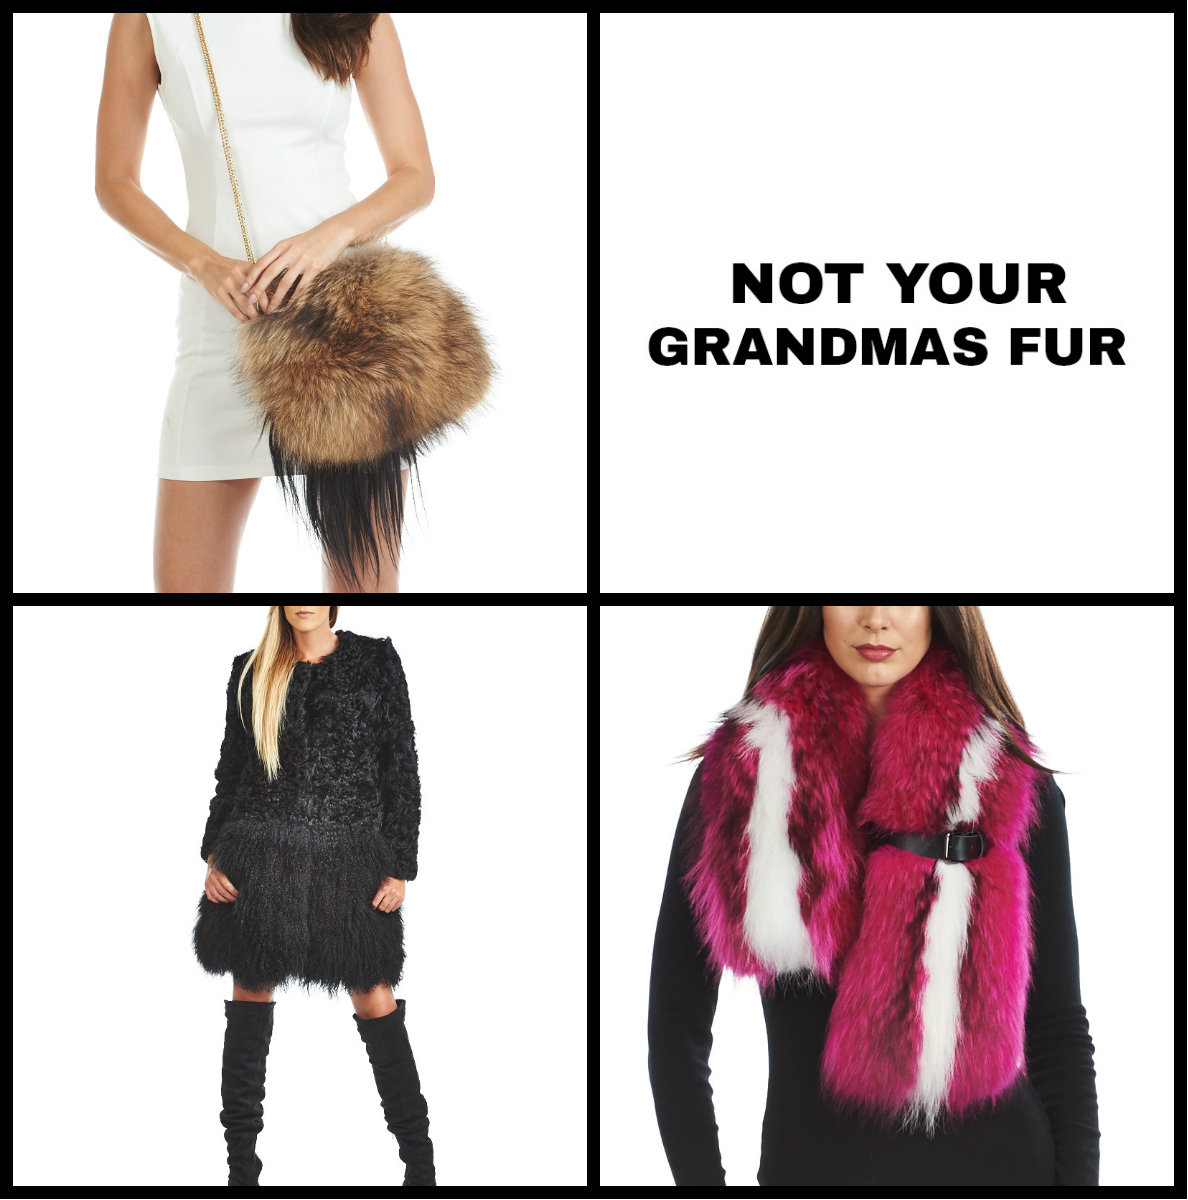 not-your-grandmas-fur